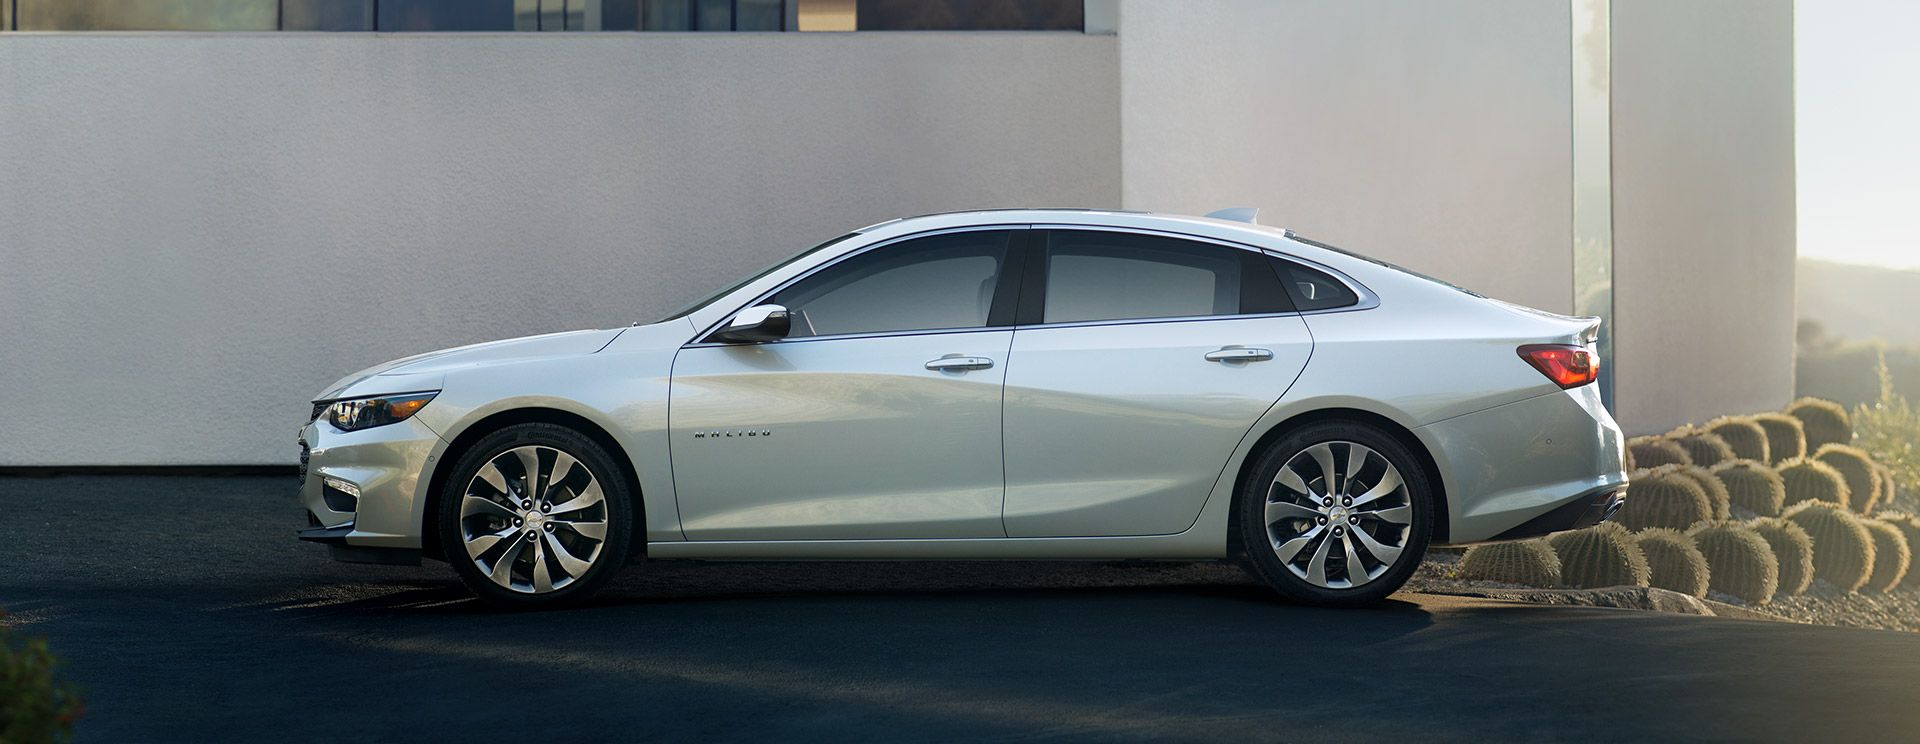 2017 Chevy Malibu for Sale in Highland, IN